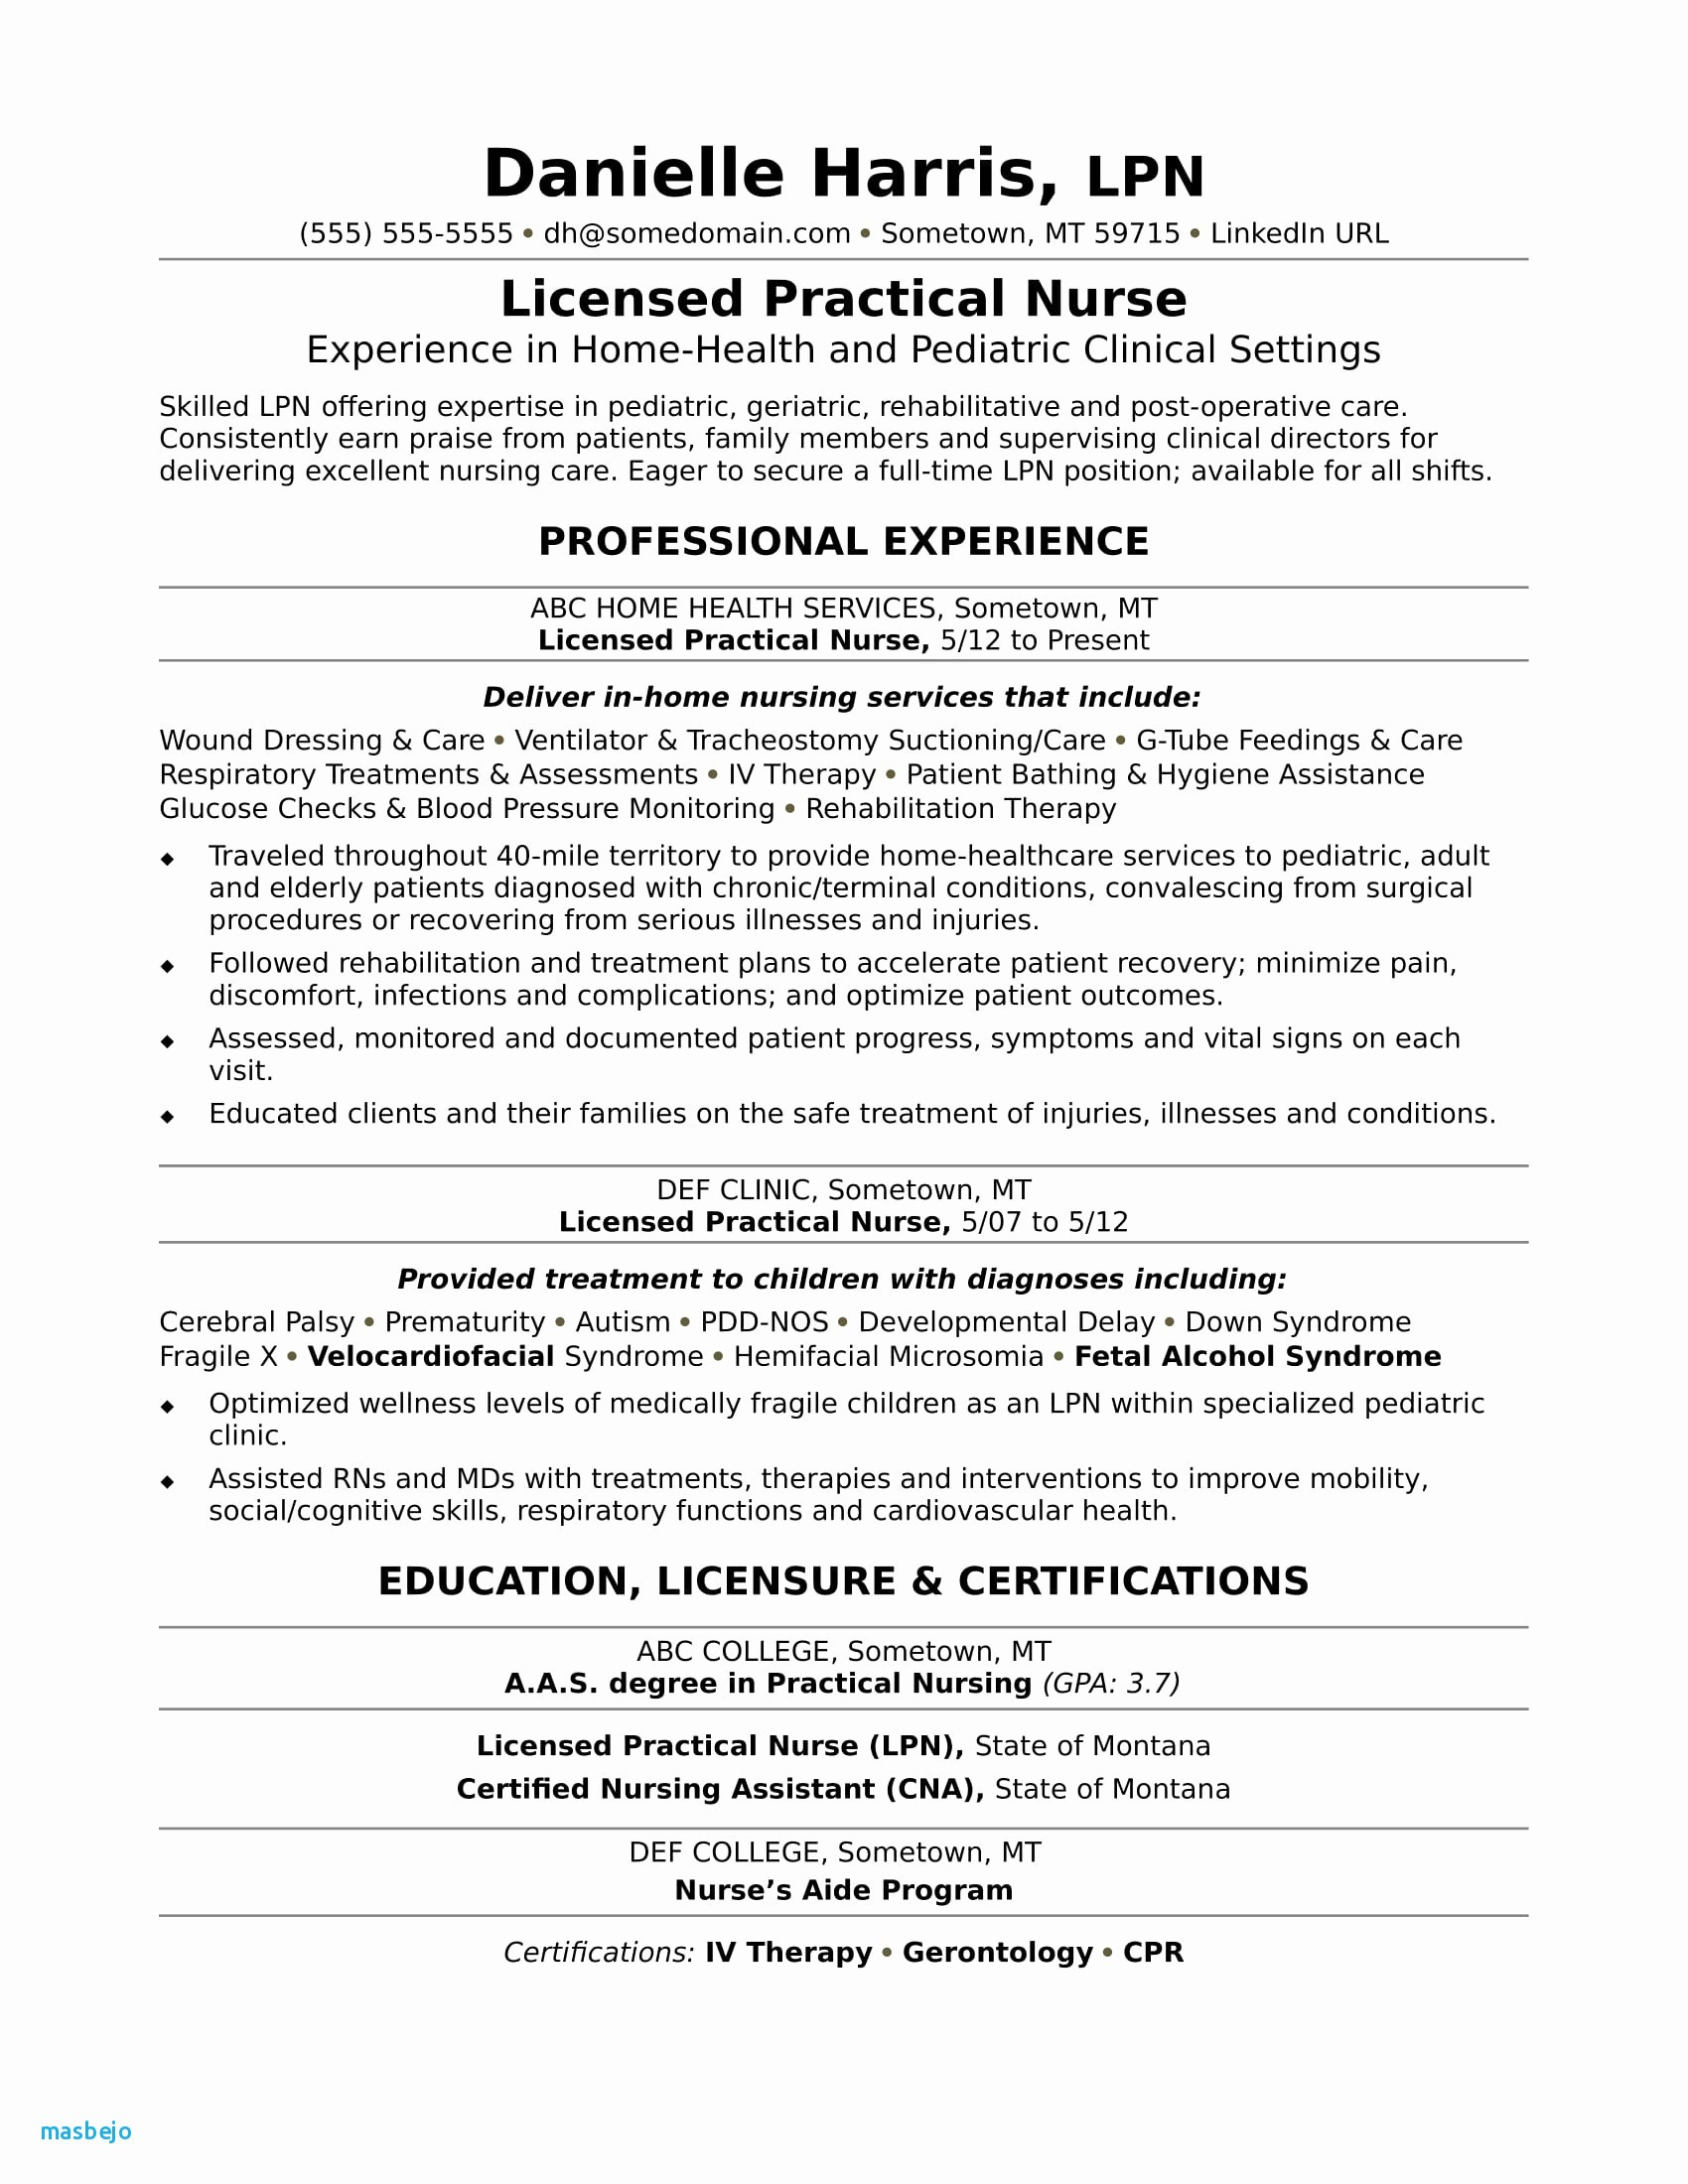 Recent College Graduate Resume - Sample Resume for A New Registered Nurse Resume Resume Examples